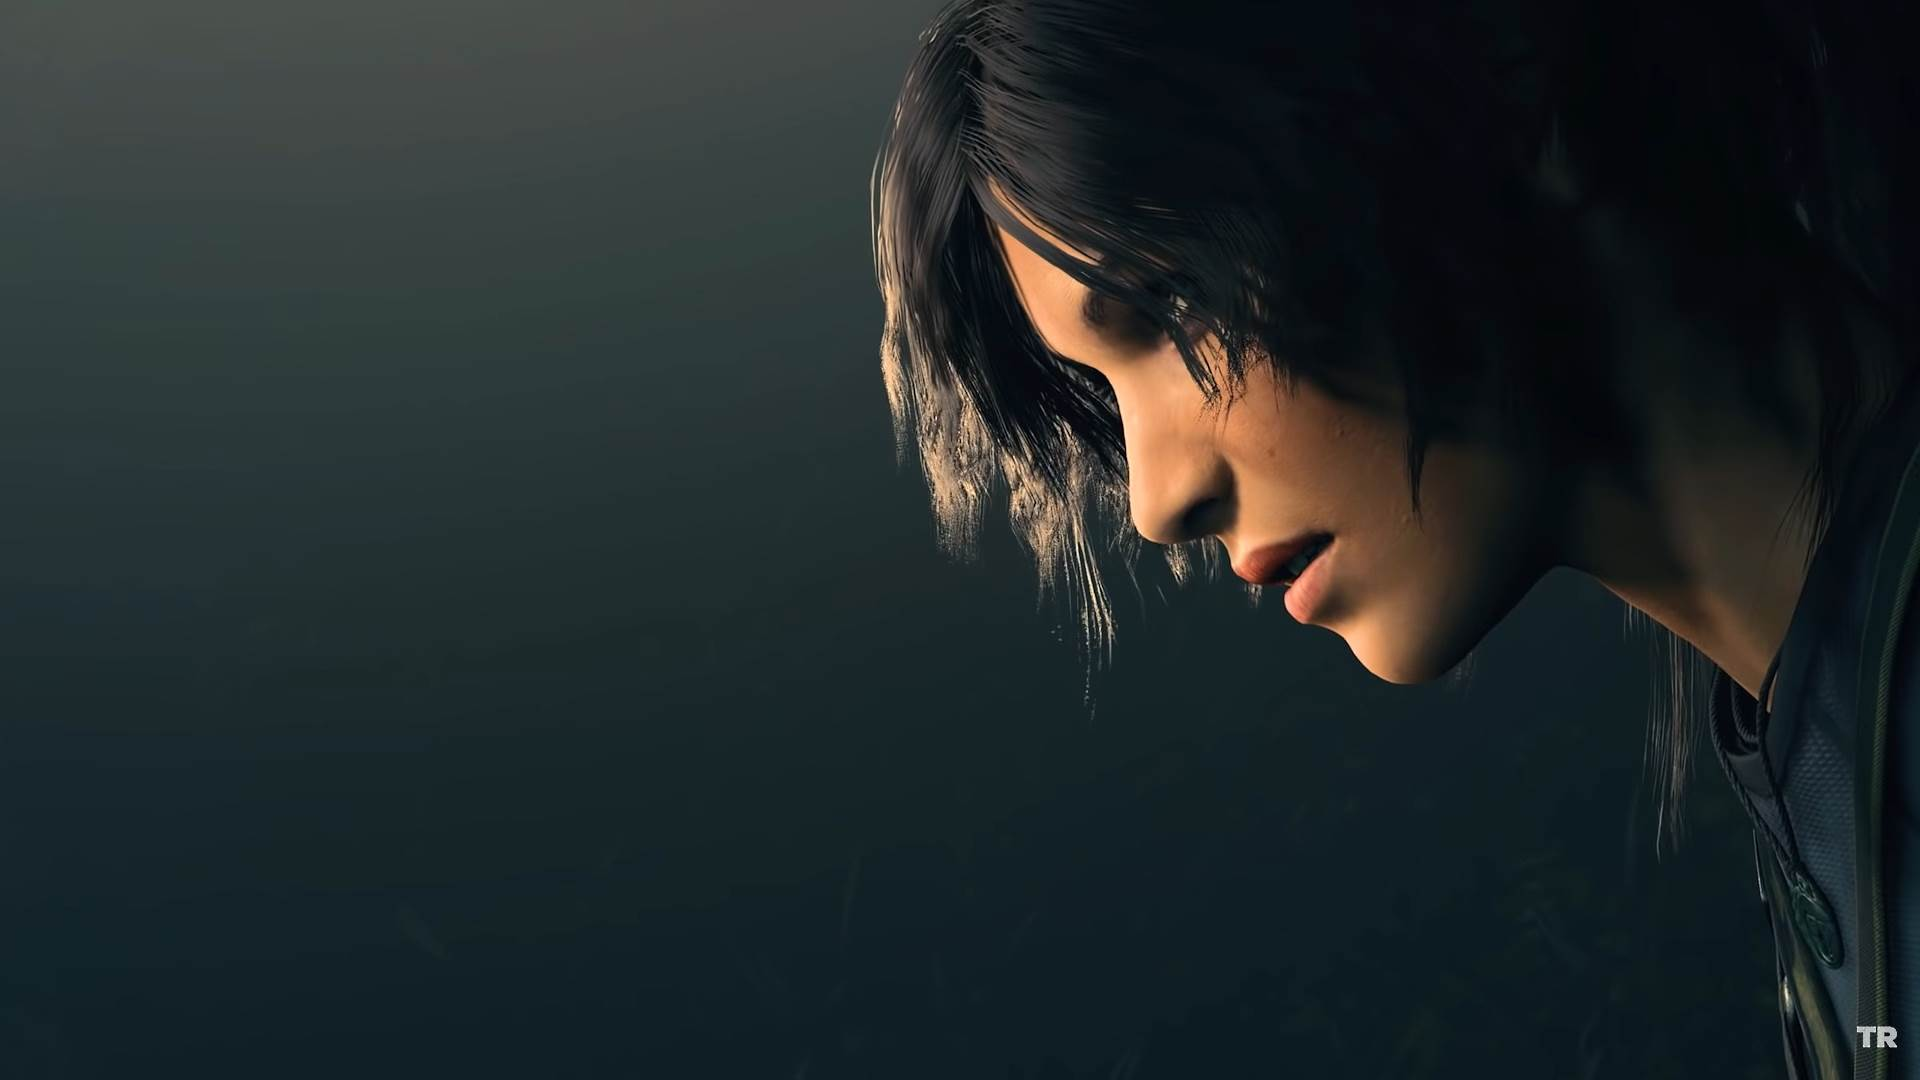 Lara Kroft, Lara Croft, Shadow of the Tomb Raider Definitive Edition 5 novembar igra video slike